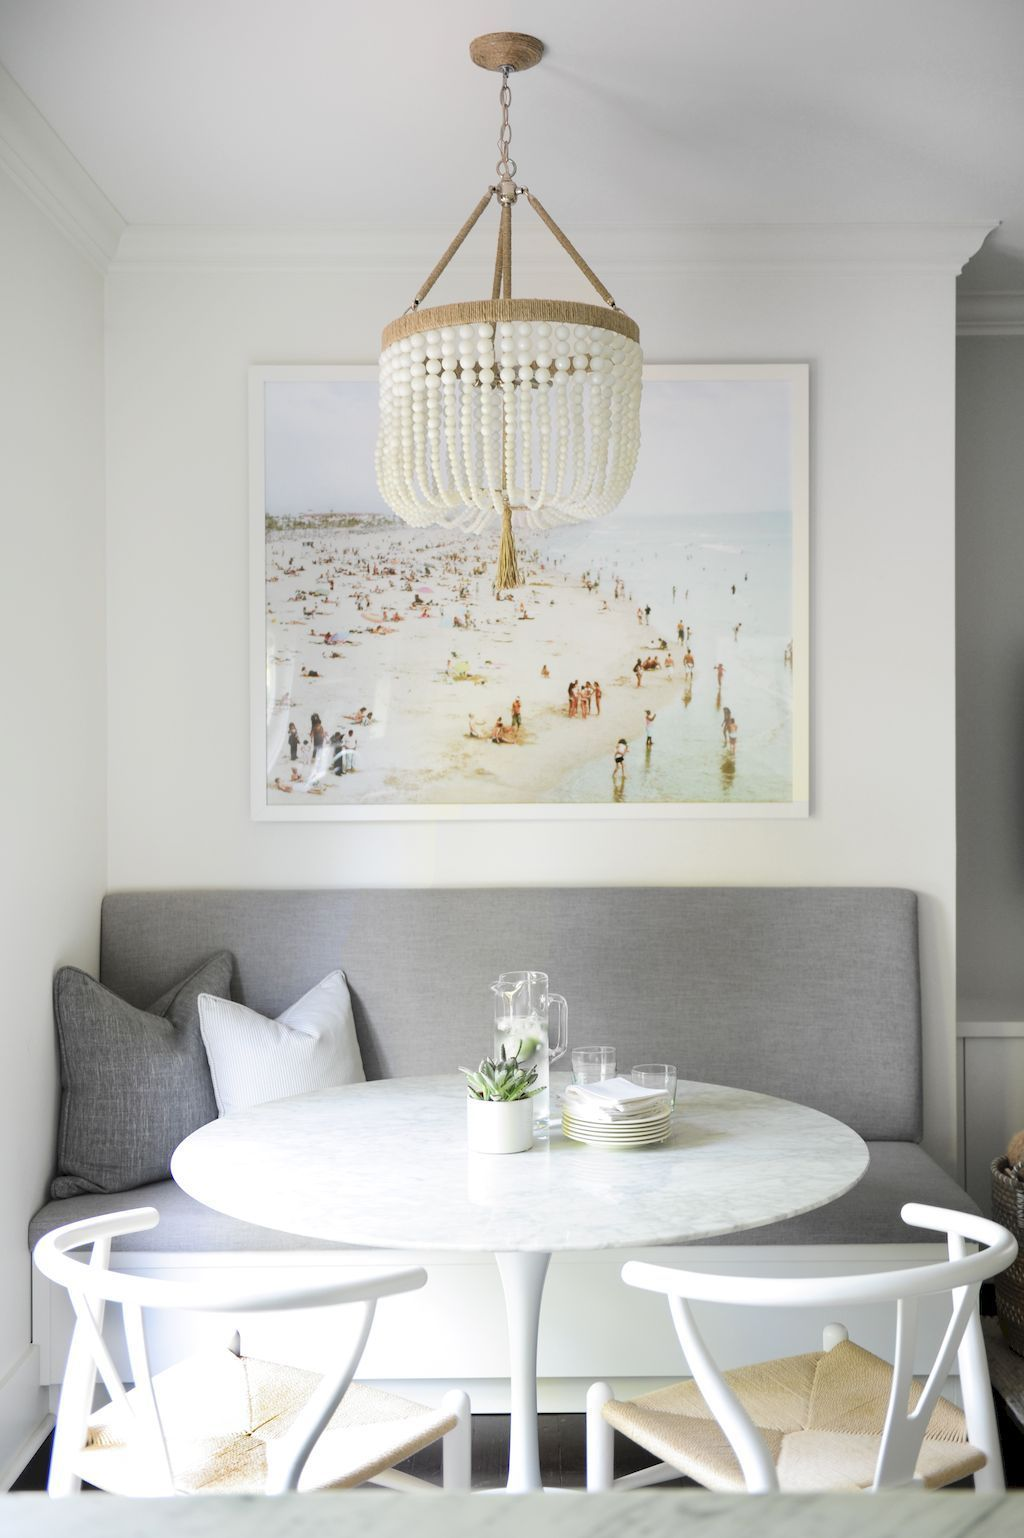 Awesome 130 Small And Clean First Apartment Dining Room Ideas Decorating And Makeover Https Coachdec Apartment Dining Room Apartment Dining Dining Room Small